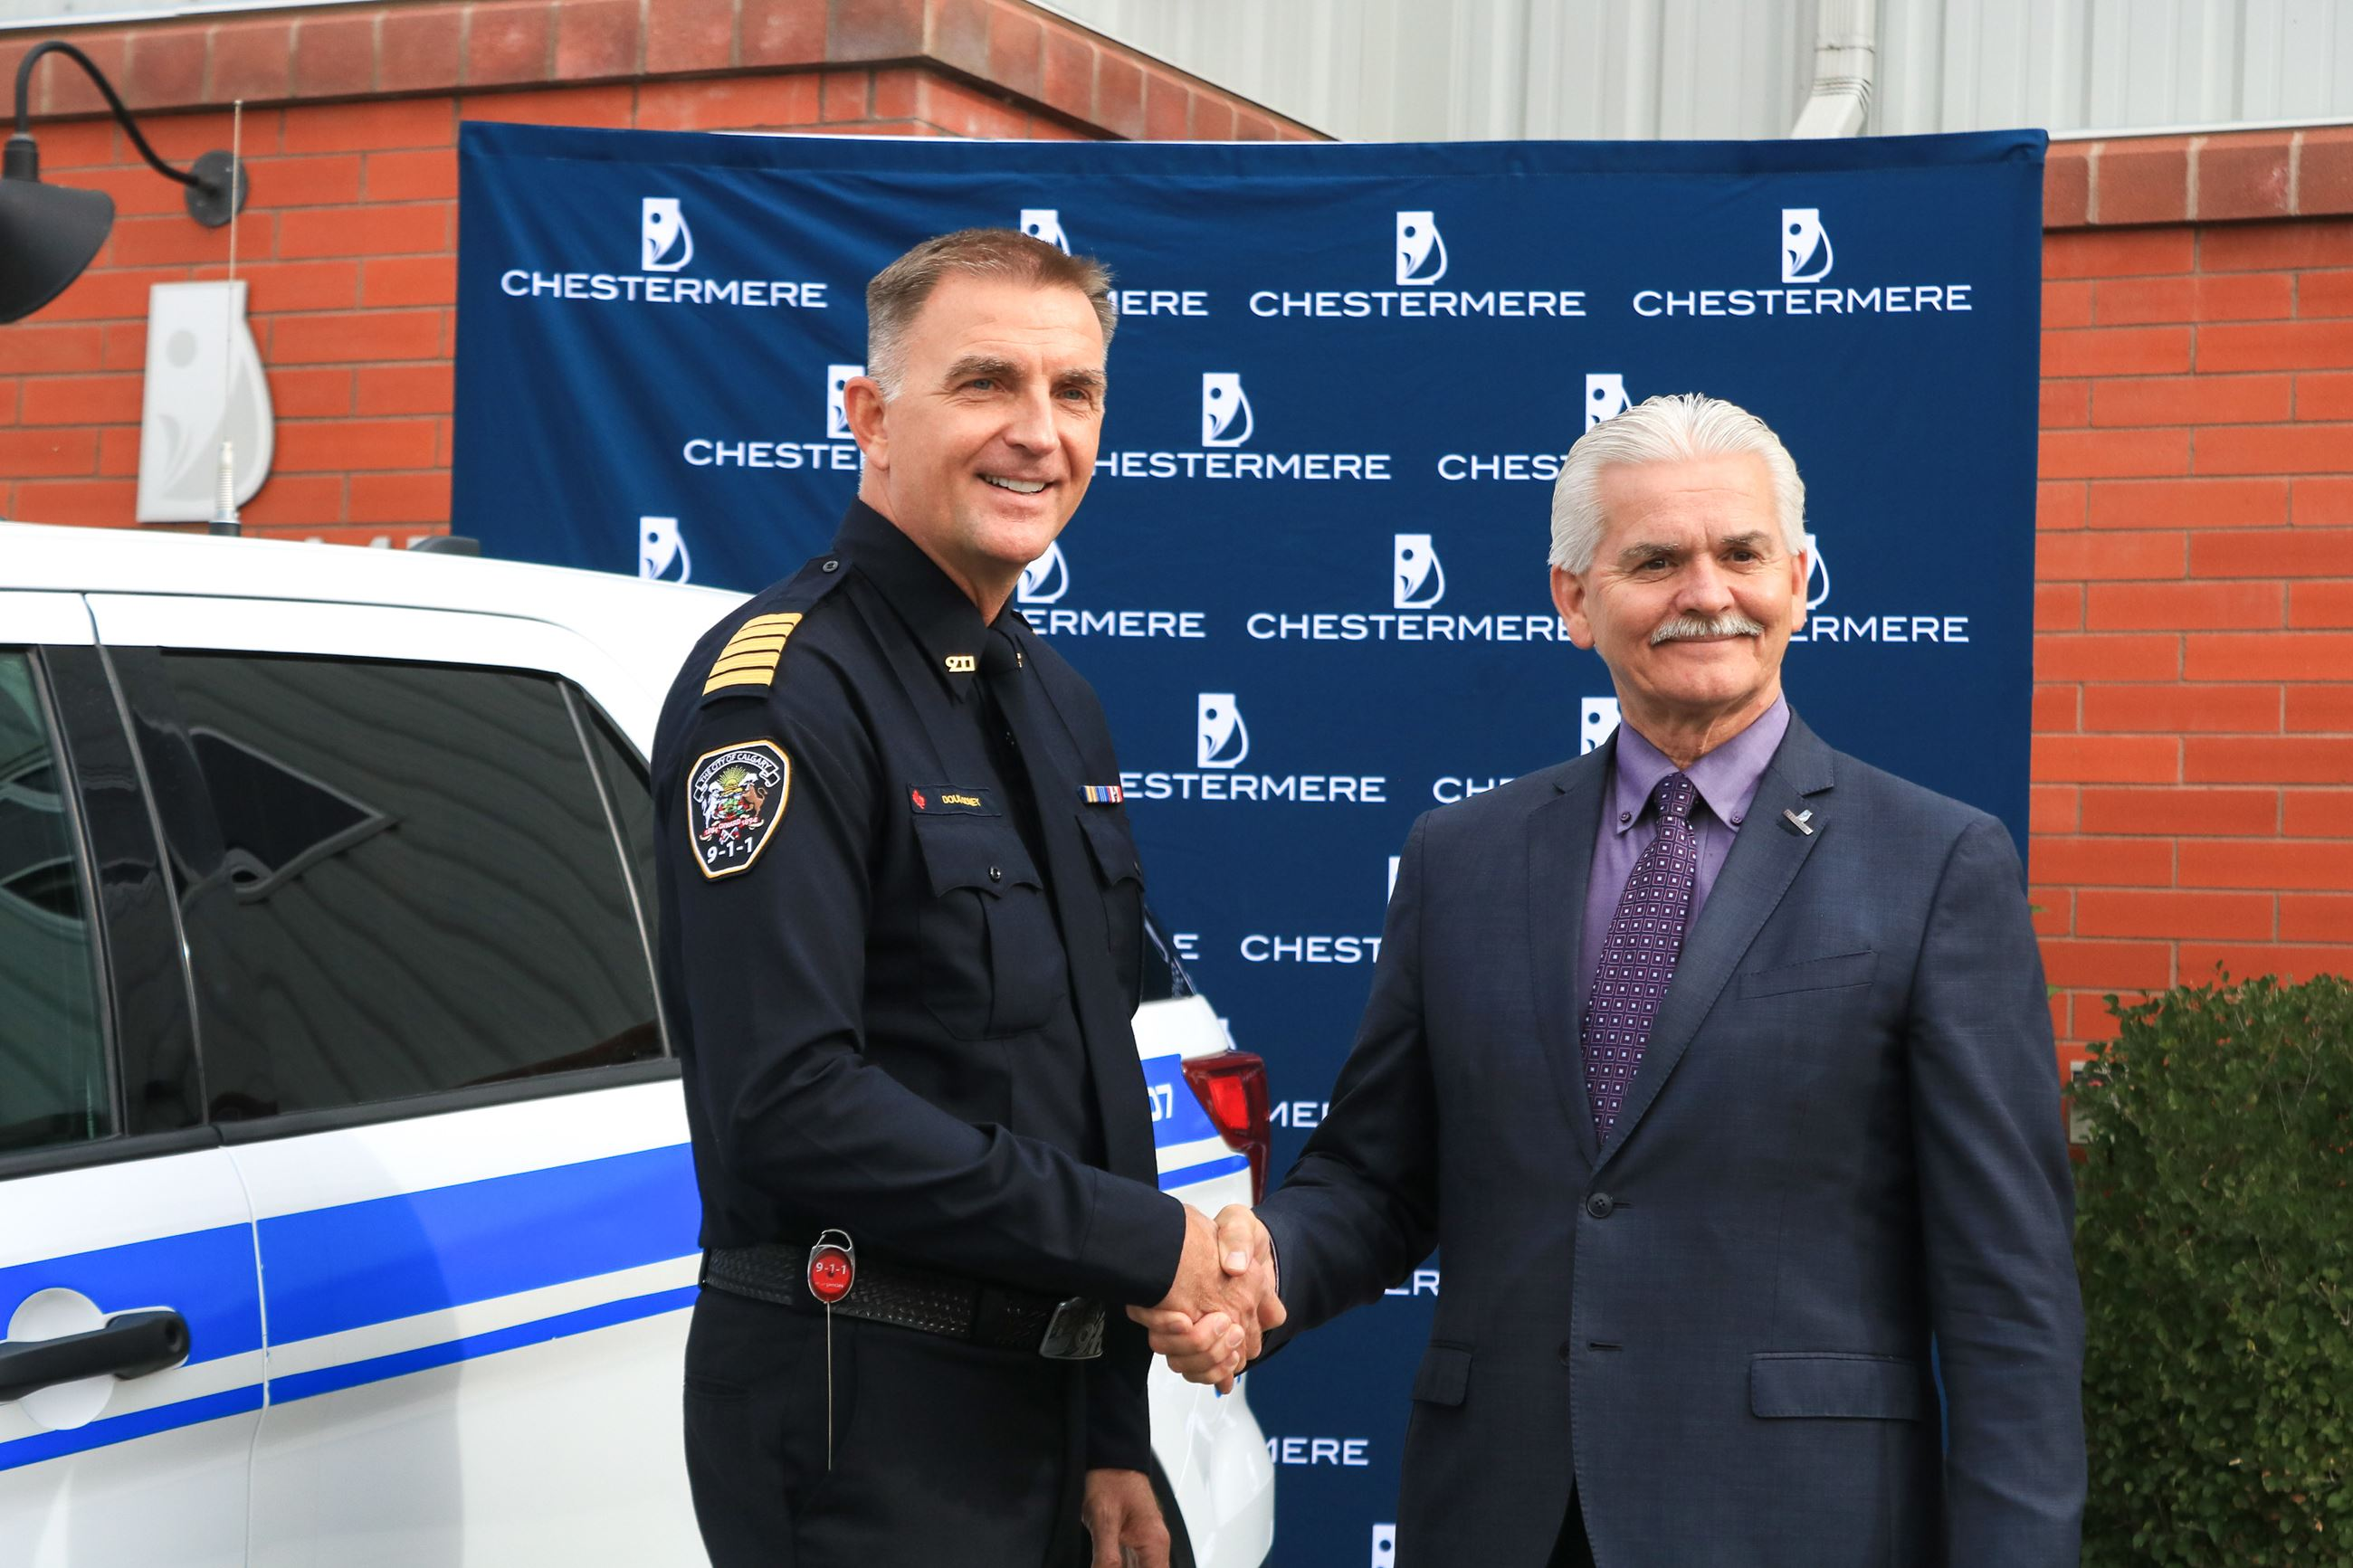 Chestermere Mayor and 911 Commander